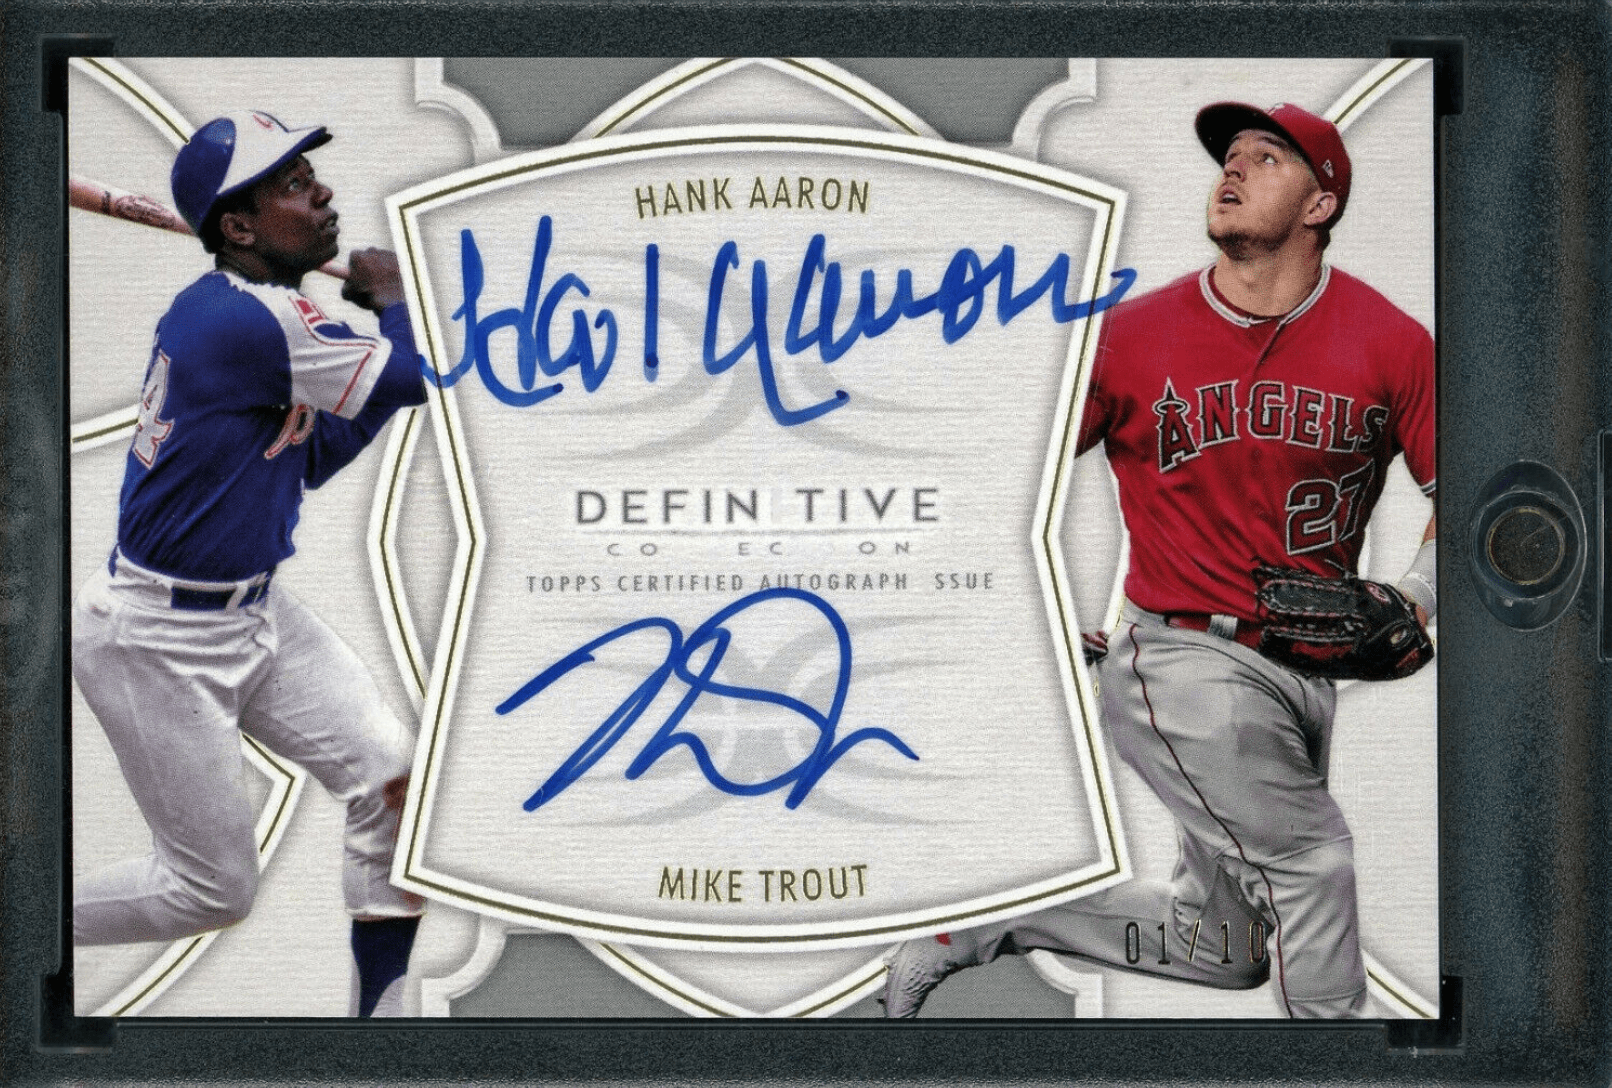 2020 topps mike trout hank aaron baseball cards